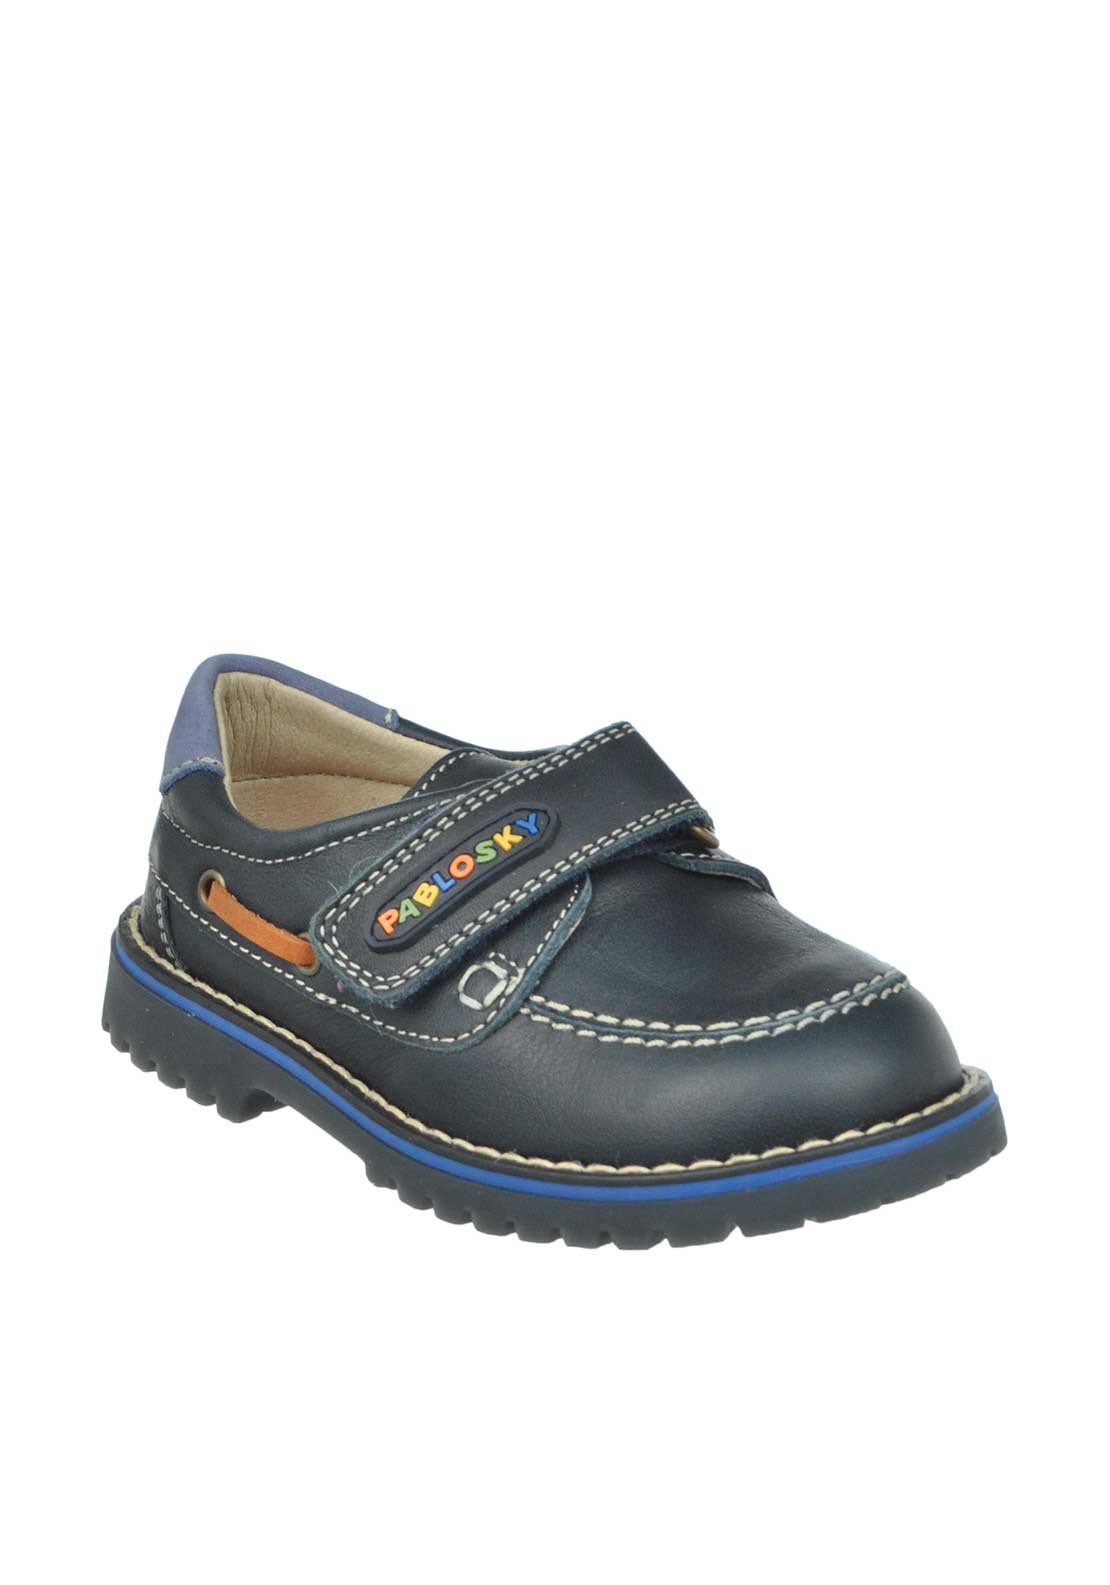 Pablosky Baby Boys Leather Velcro Strap Loafer Shoes, Navy